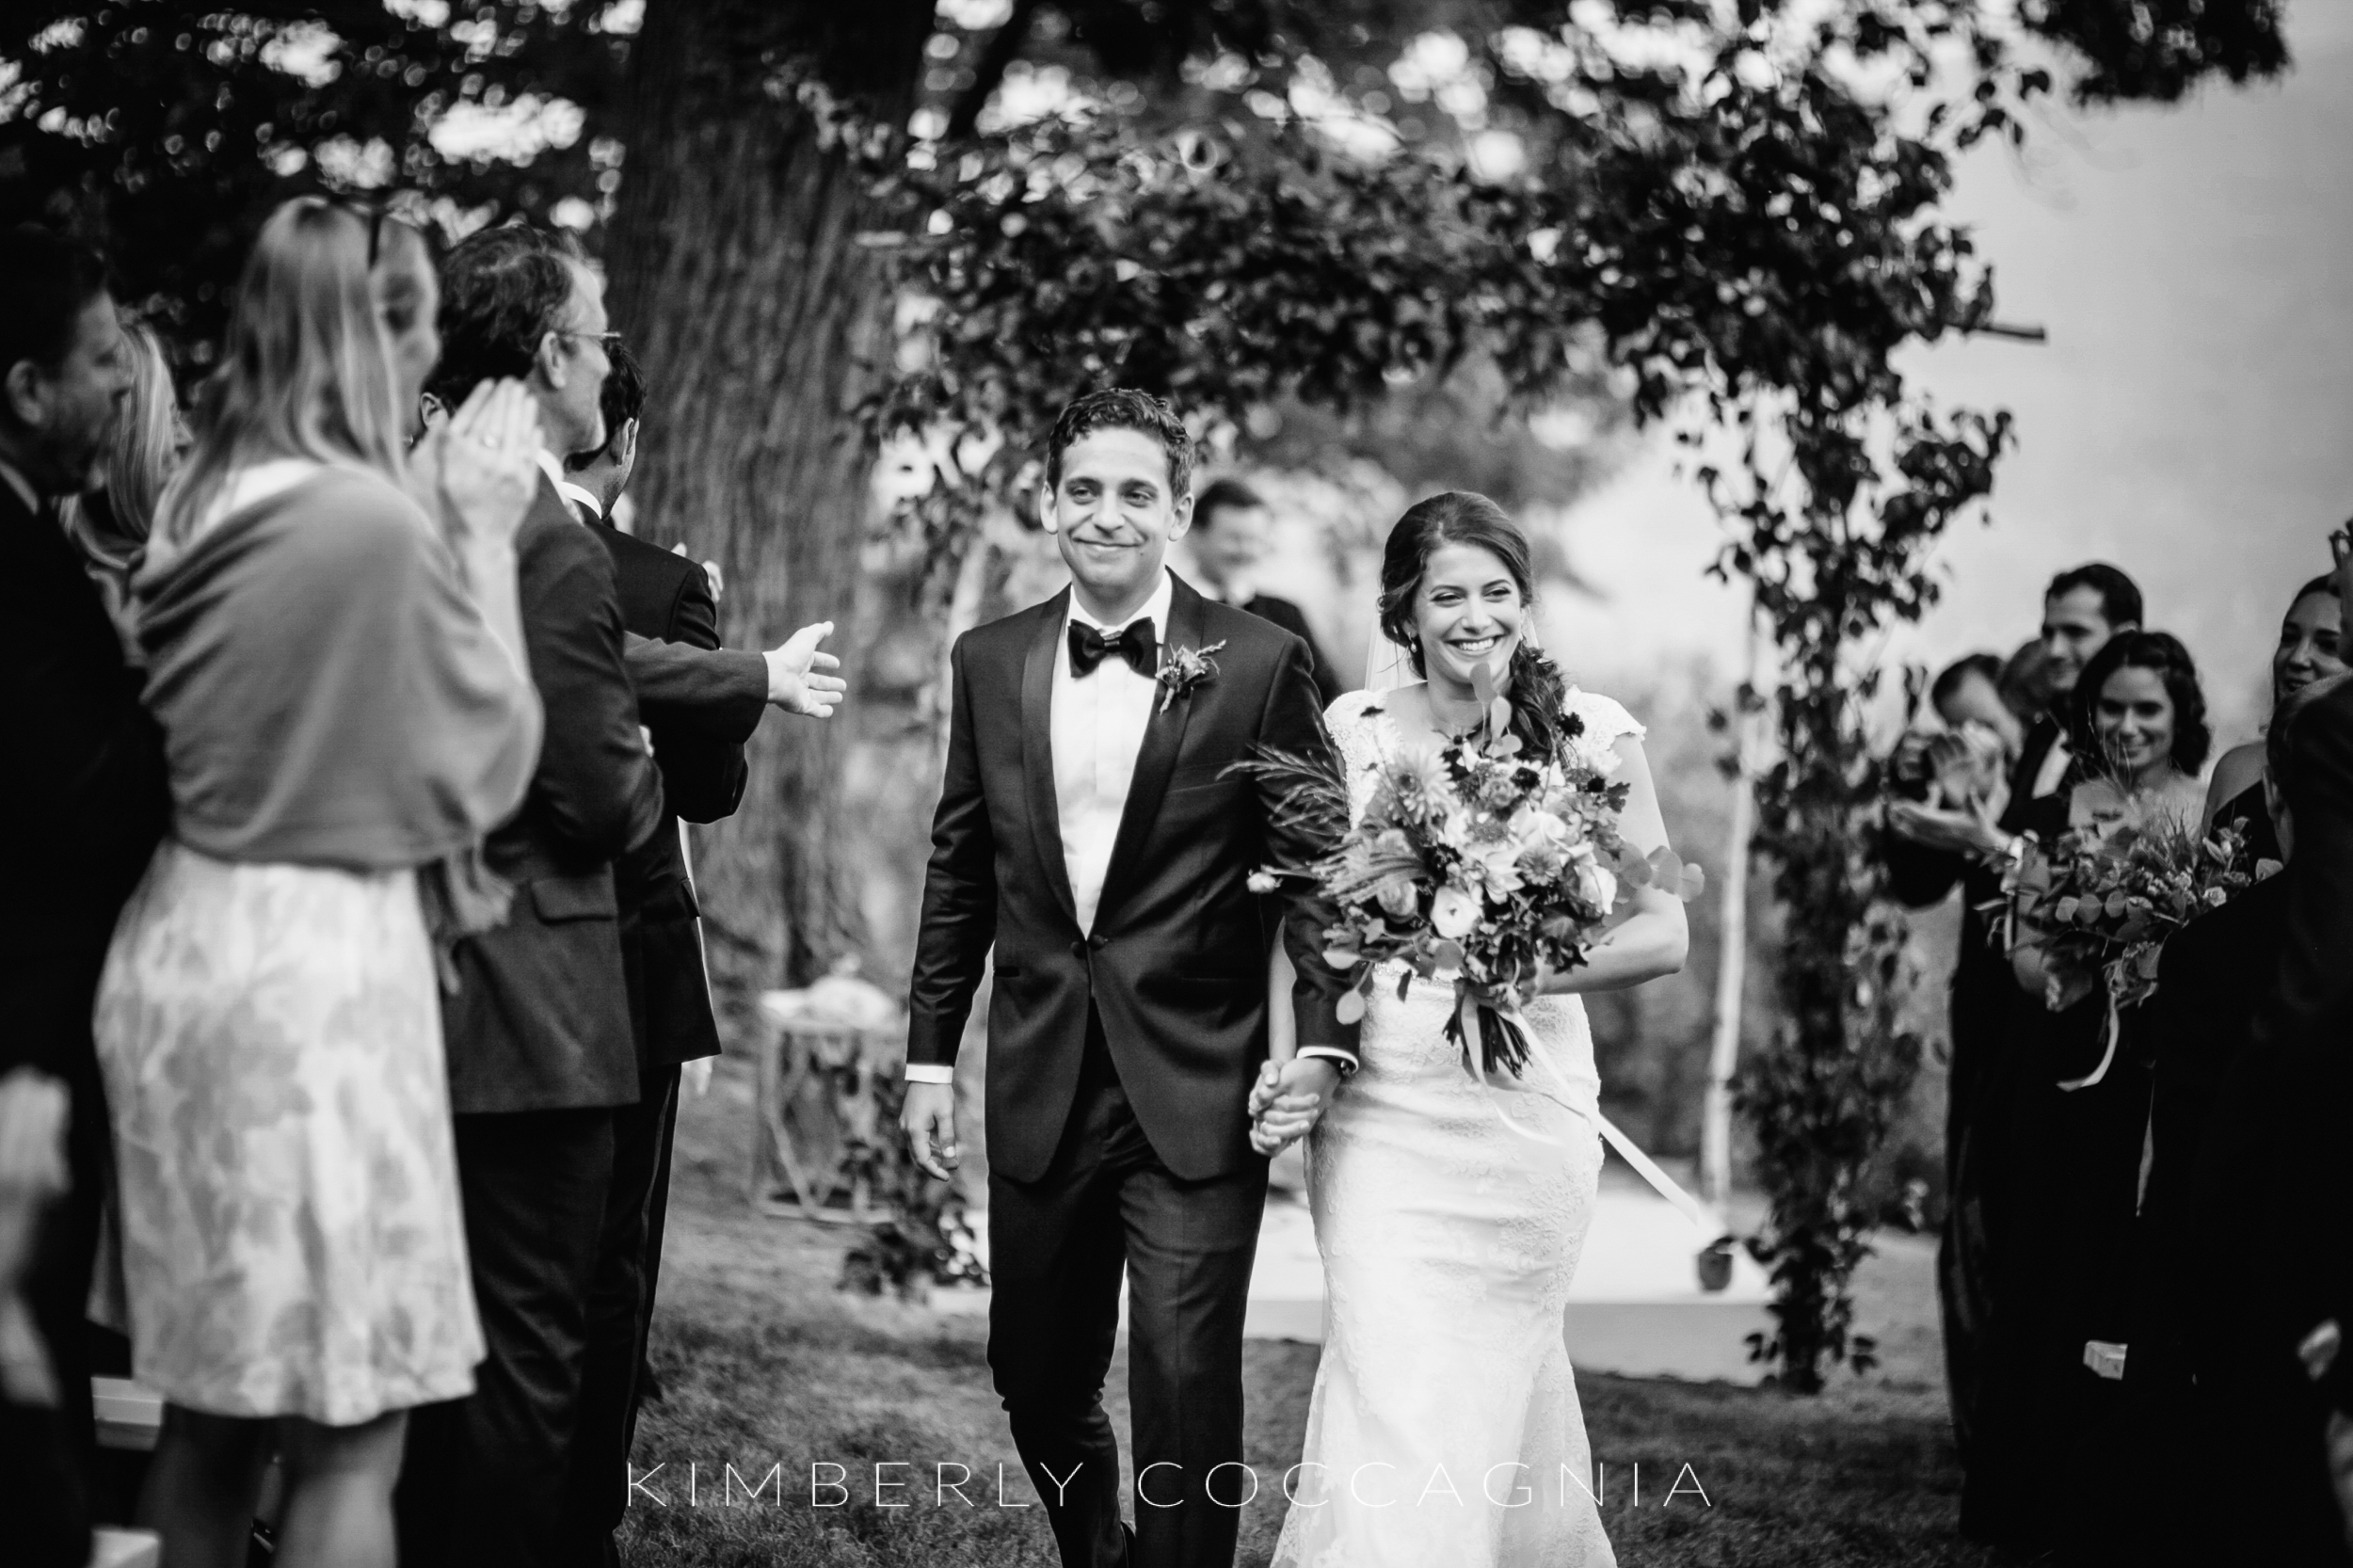 Kimberly+Coccagnia+Hudson+Valley+Wedding+Photographer-83.JPG